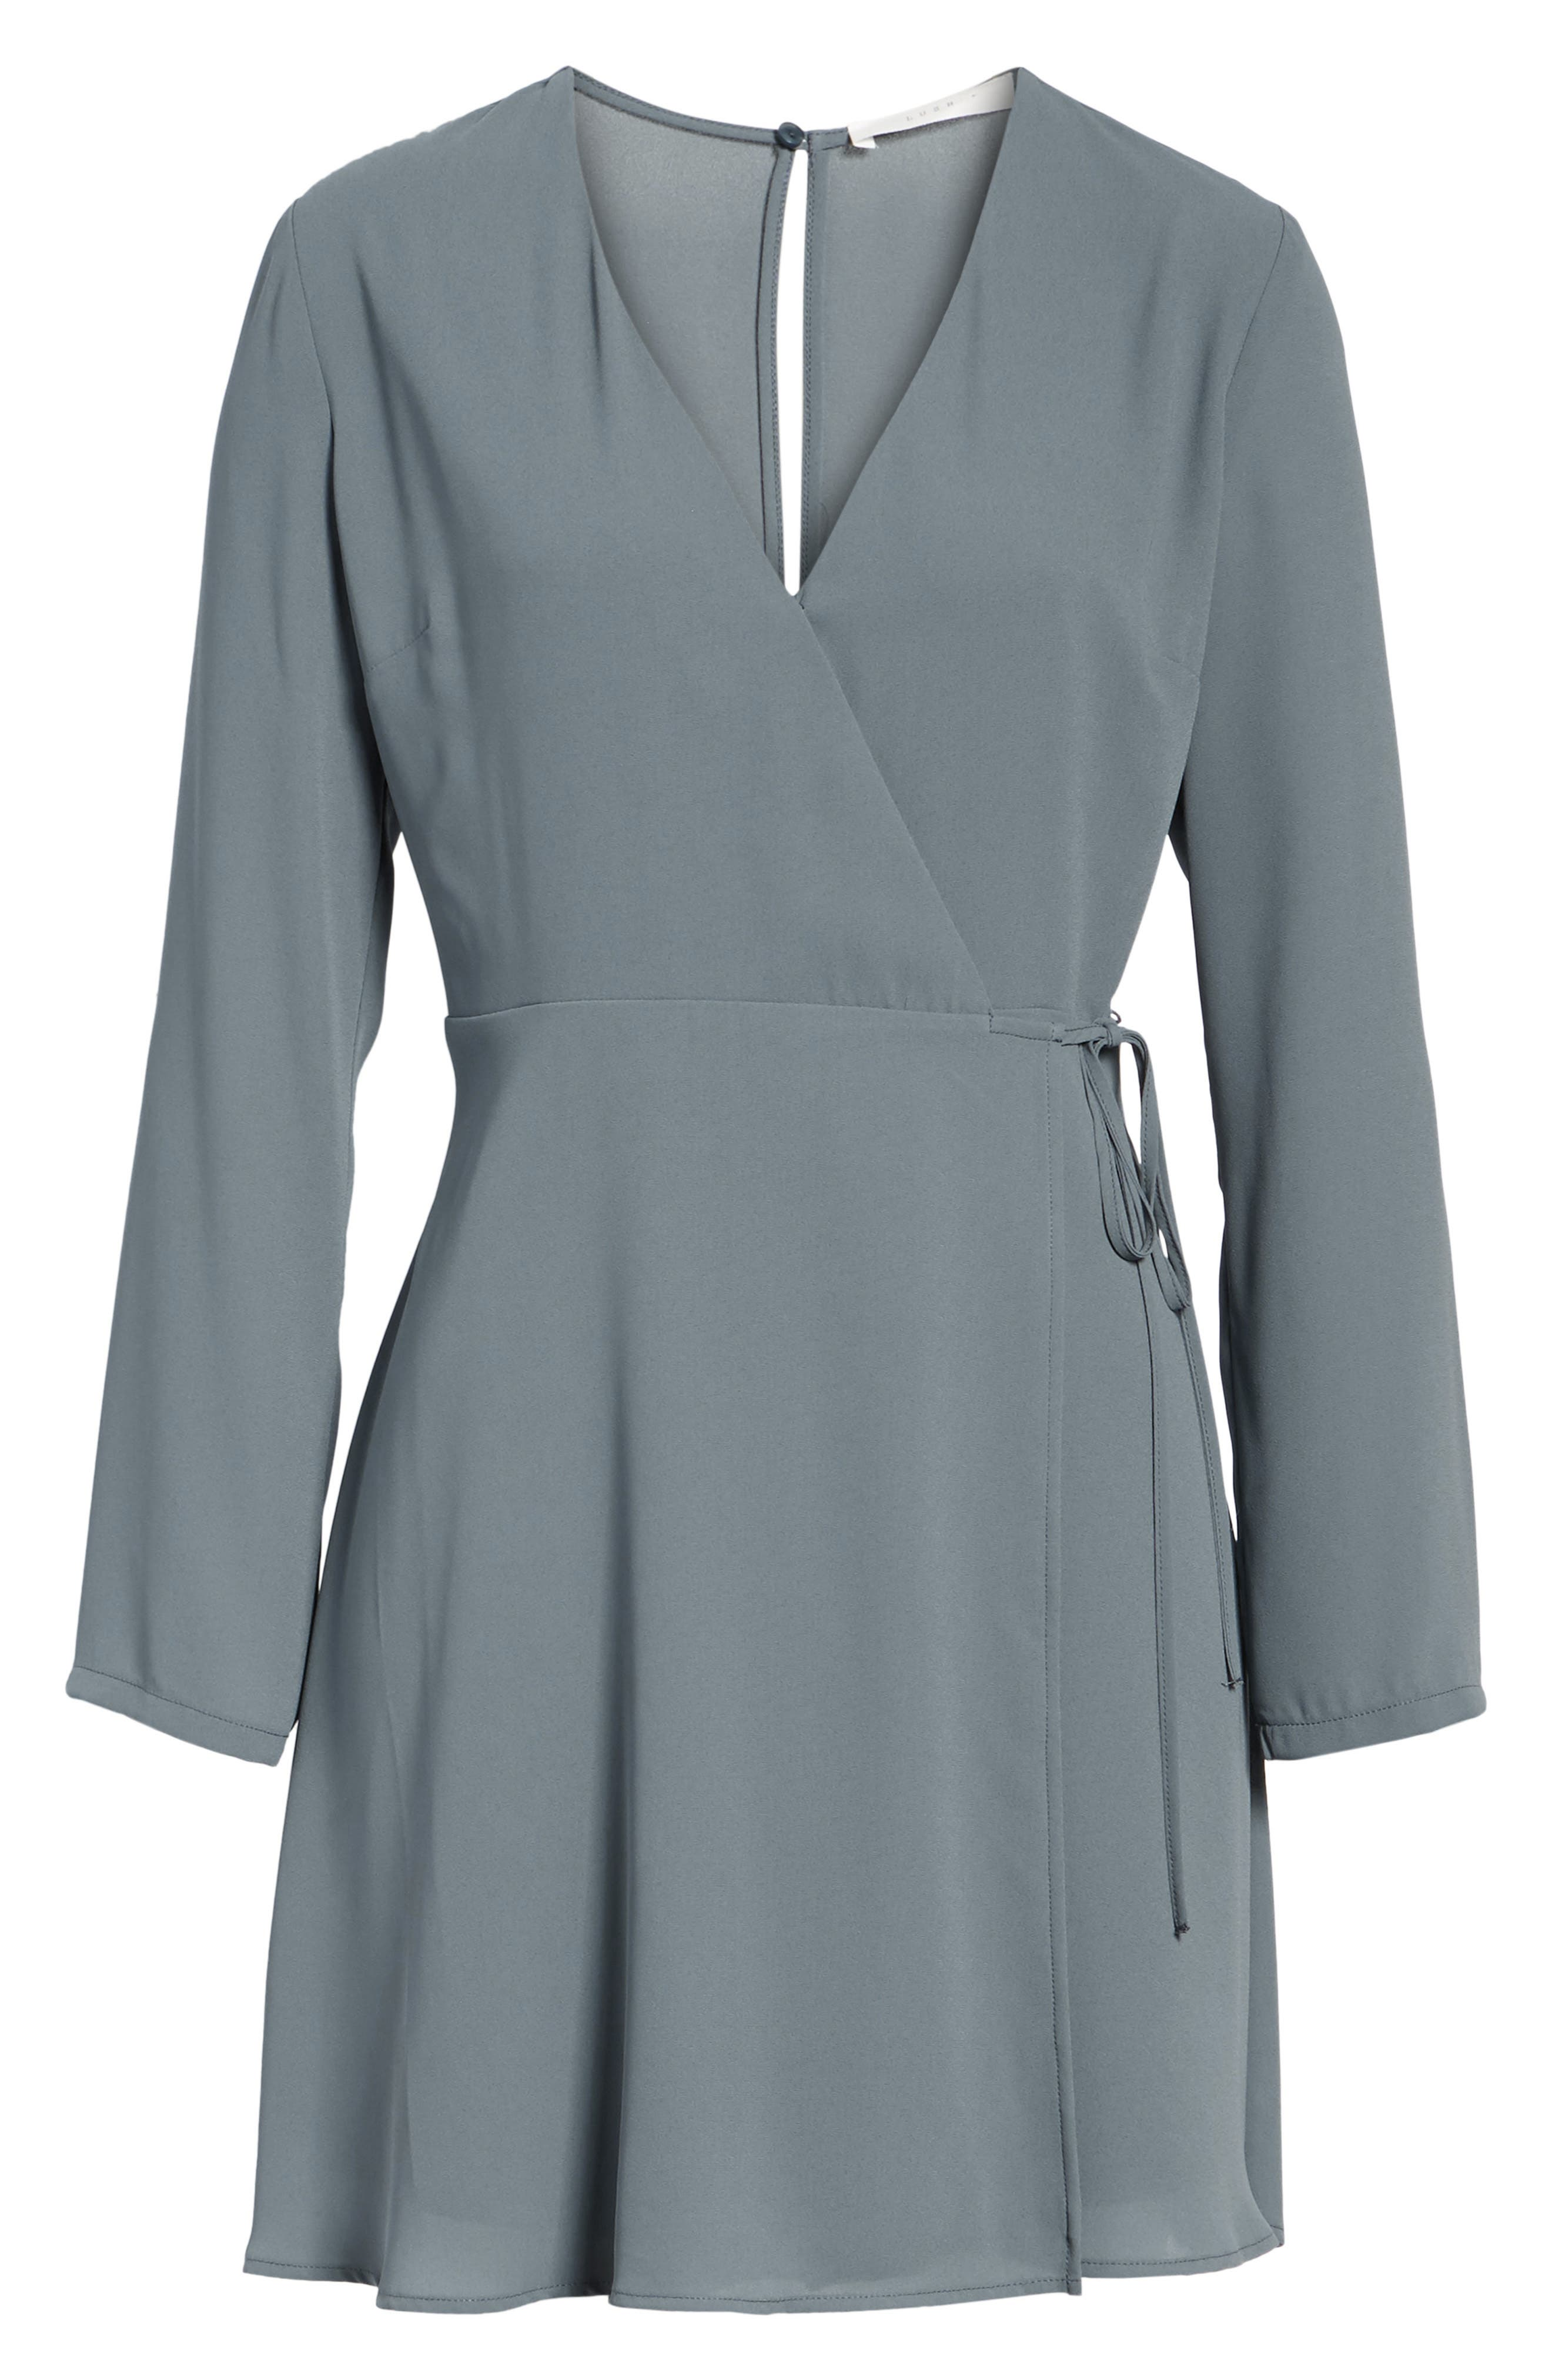 Elly Wrap Dress,                             Alternate thumbnail 6, color,                             Stormy Weather